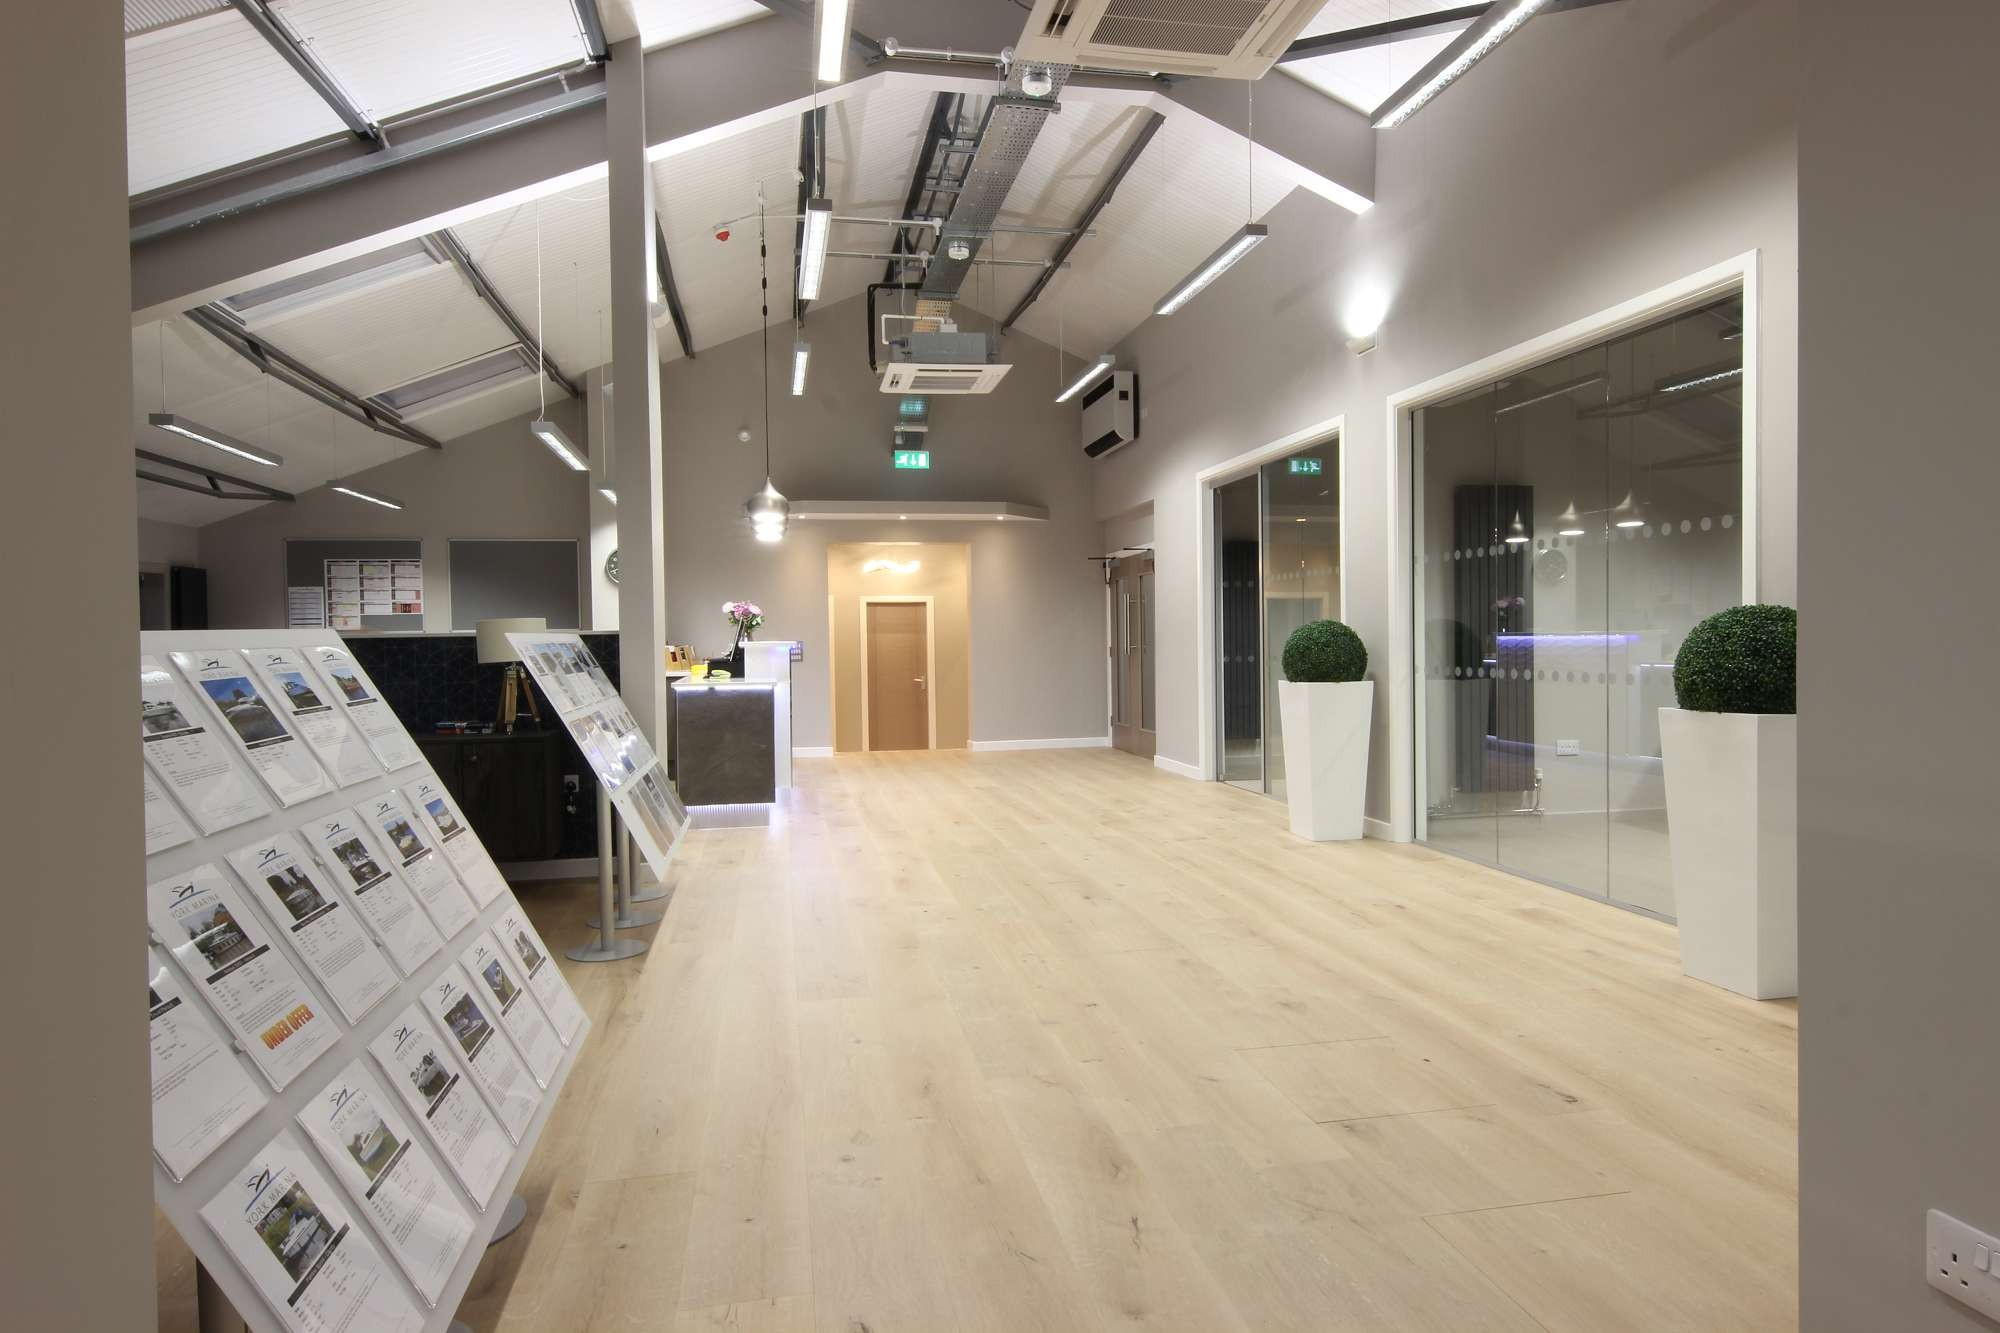 Acoustic Glass Office Partitioning creates client spaces at York Marina